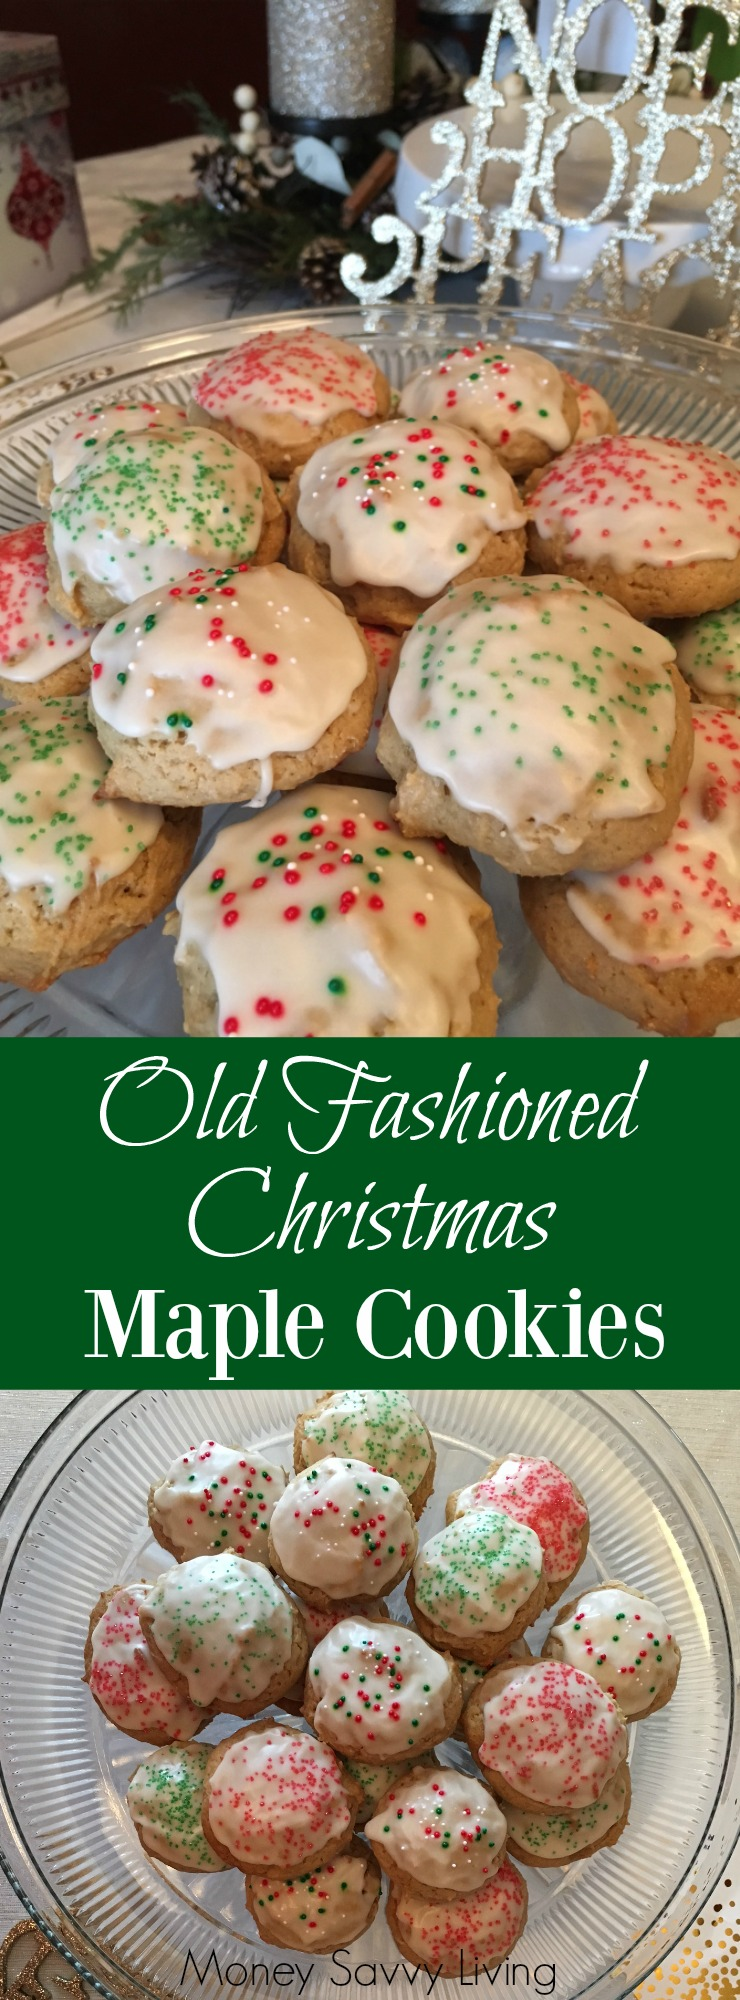 These Old Fashioned Maple Cookies are perfect for Christmas! #oldfashioned #homemade #cookies #cookierecipe #maple #maplecookies #christmas #christmascookies #easycookierecipe